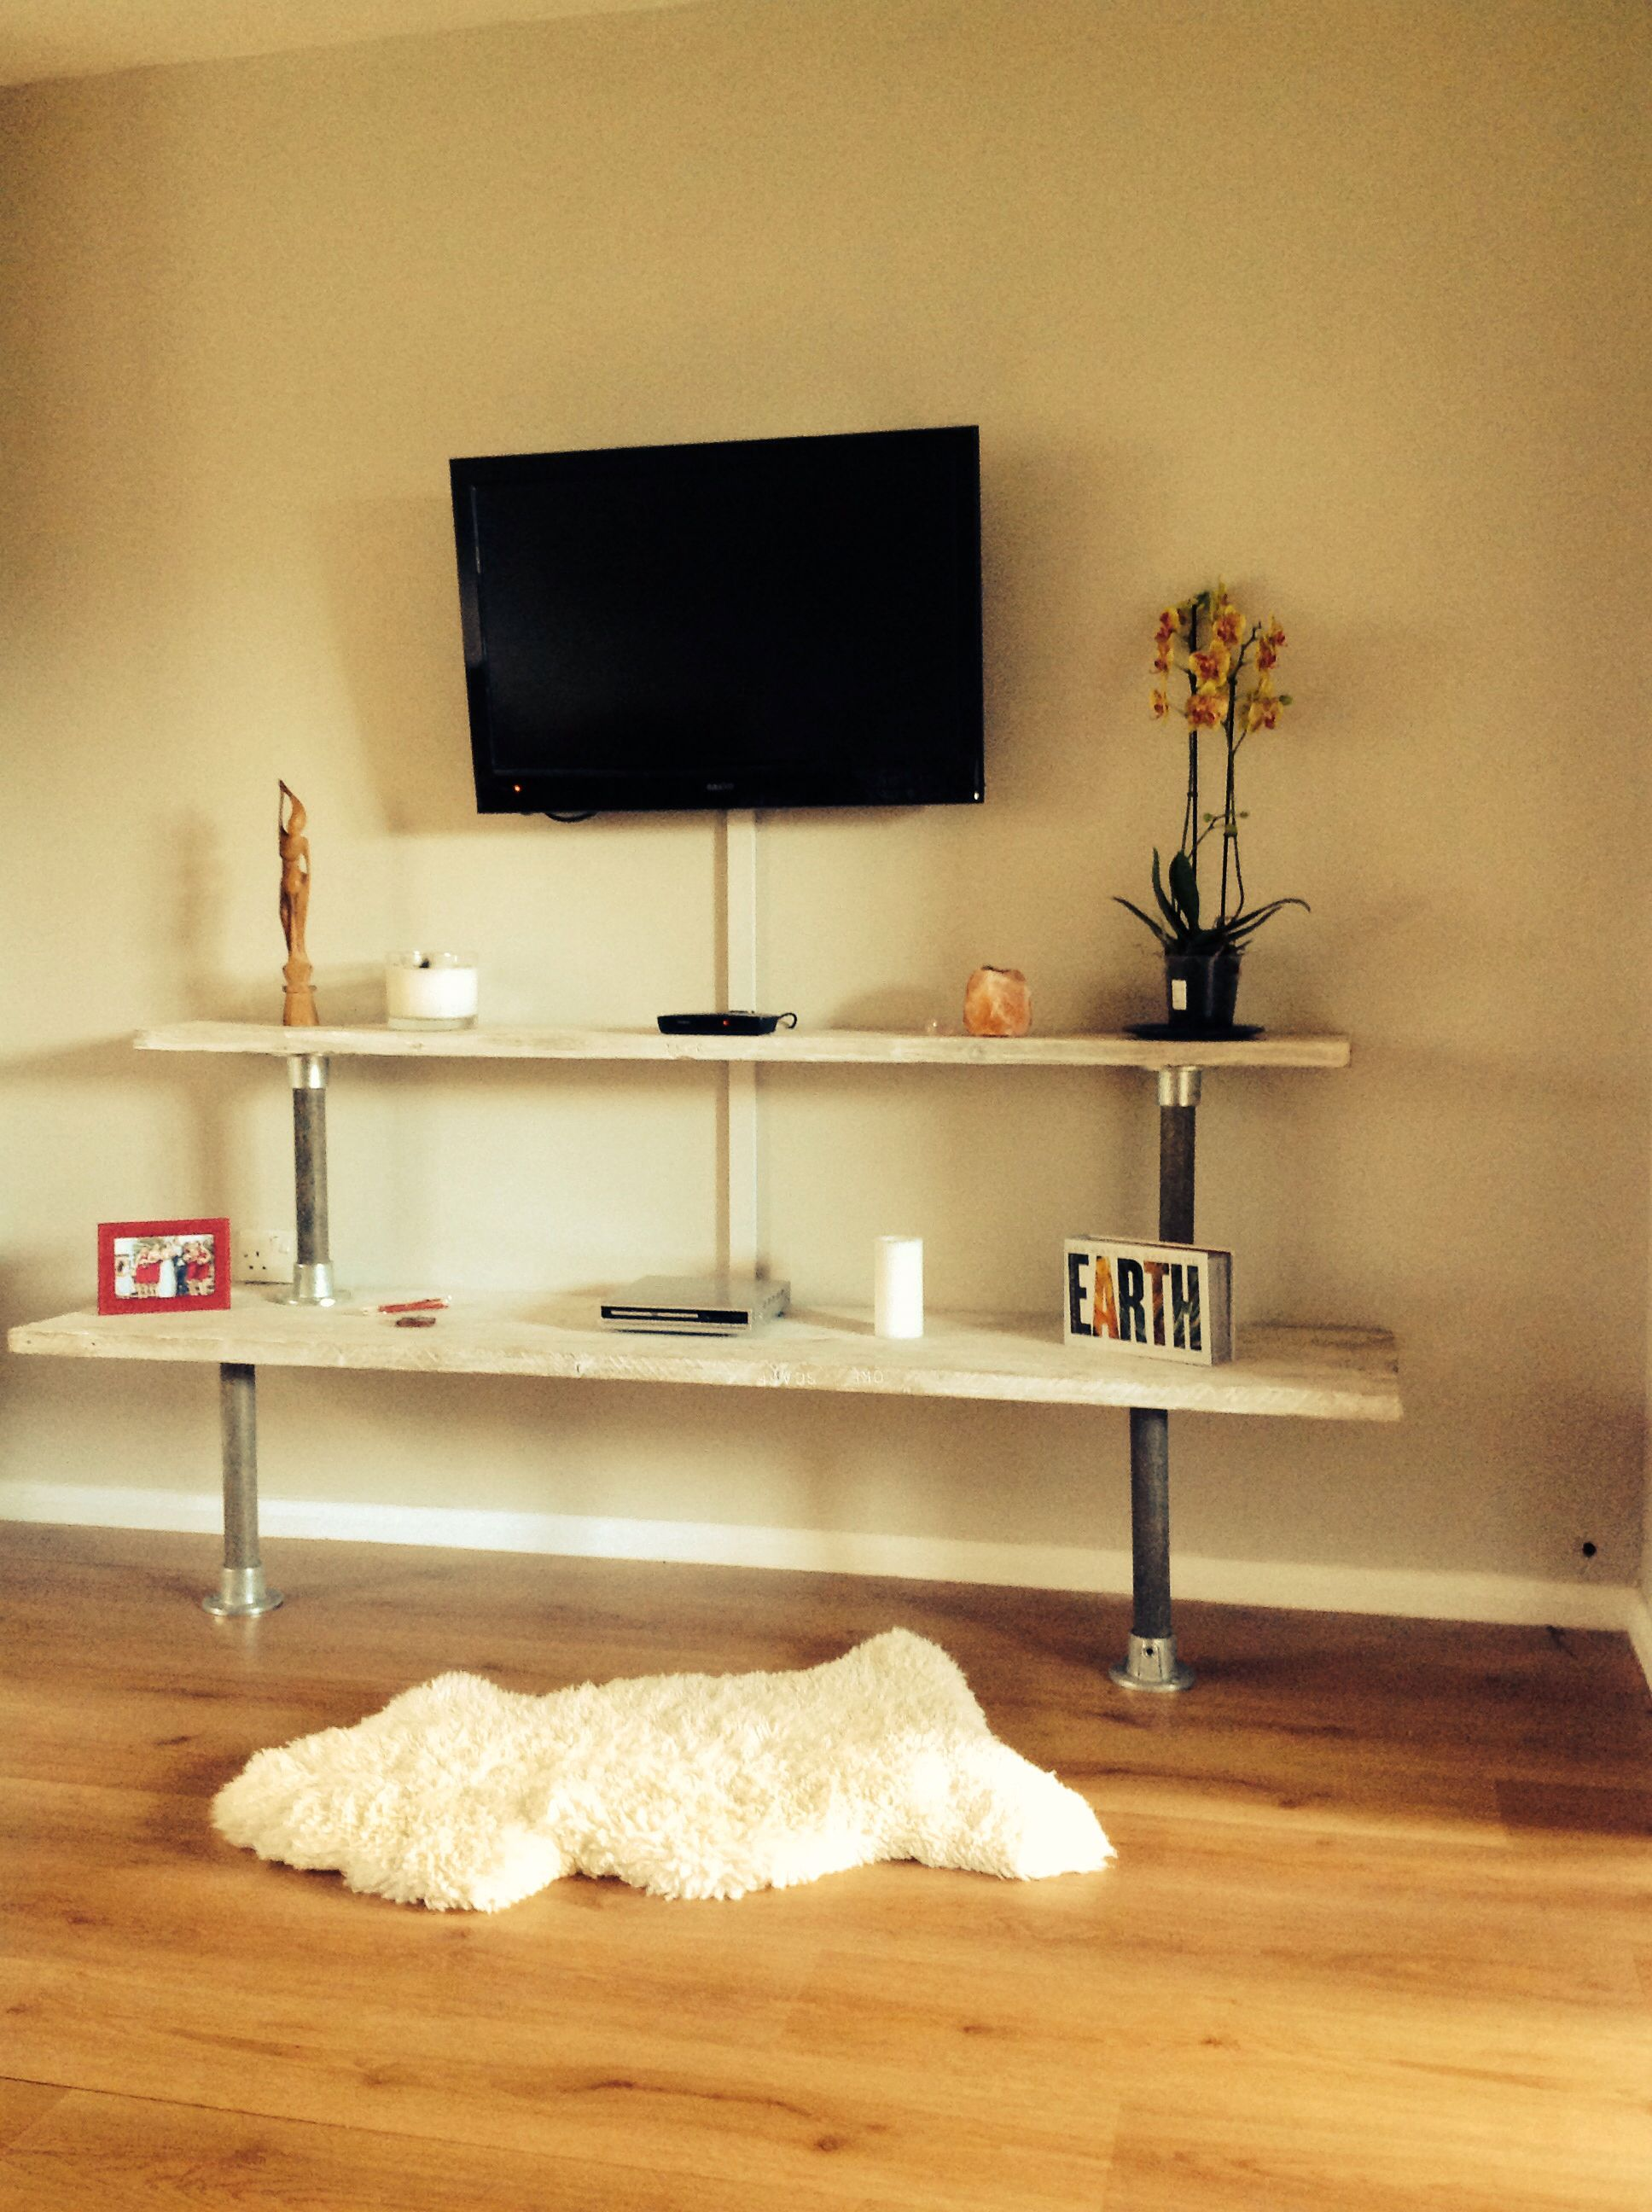 DIY tv shelves from reclaimed scaffold boards and poles | Home decor ...